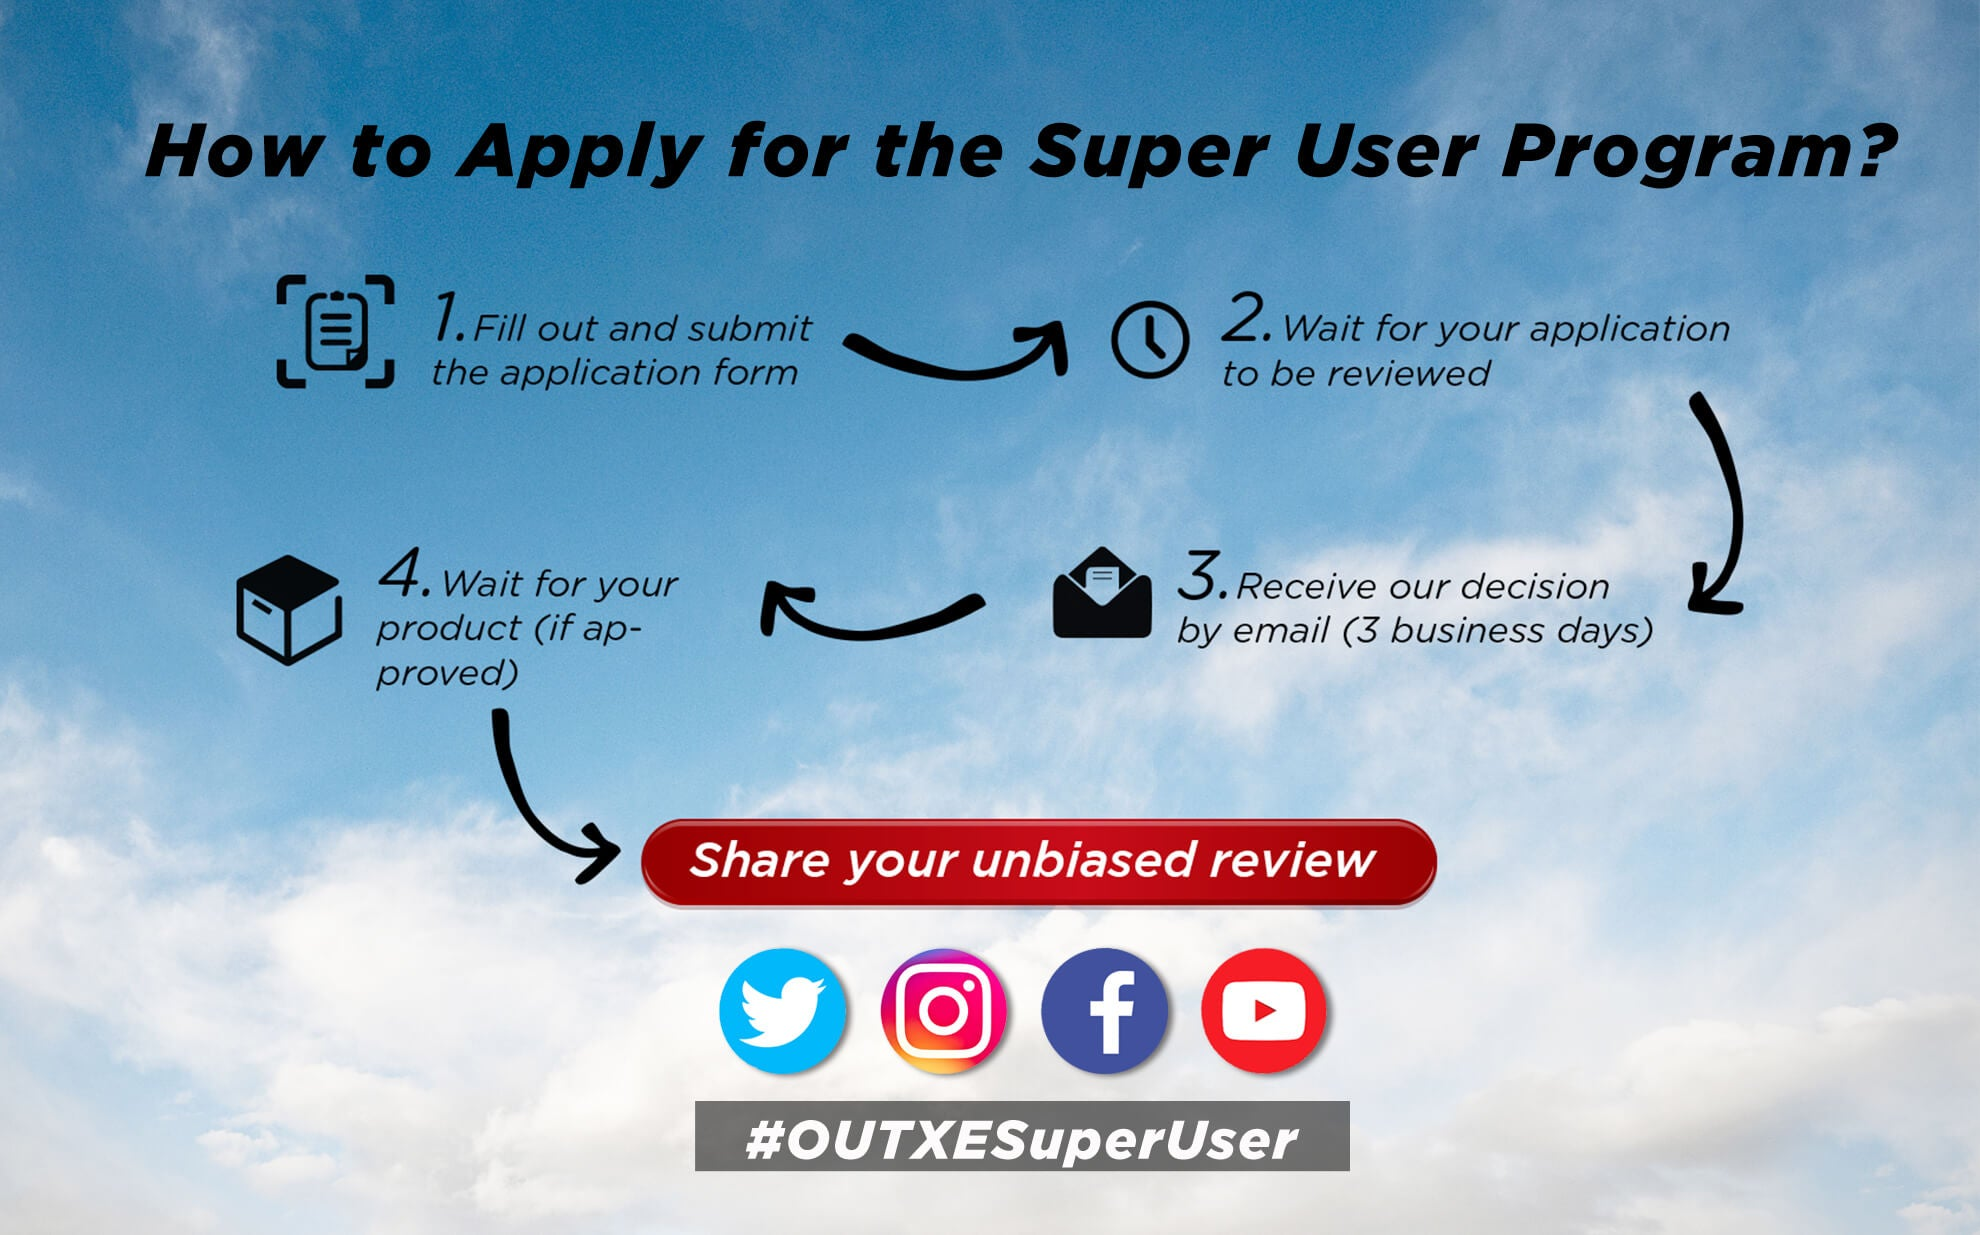 outxe super user program #outxesuperuser